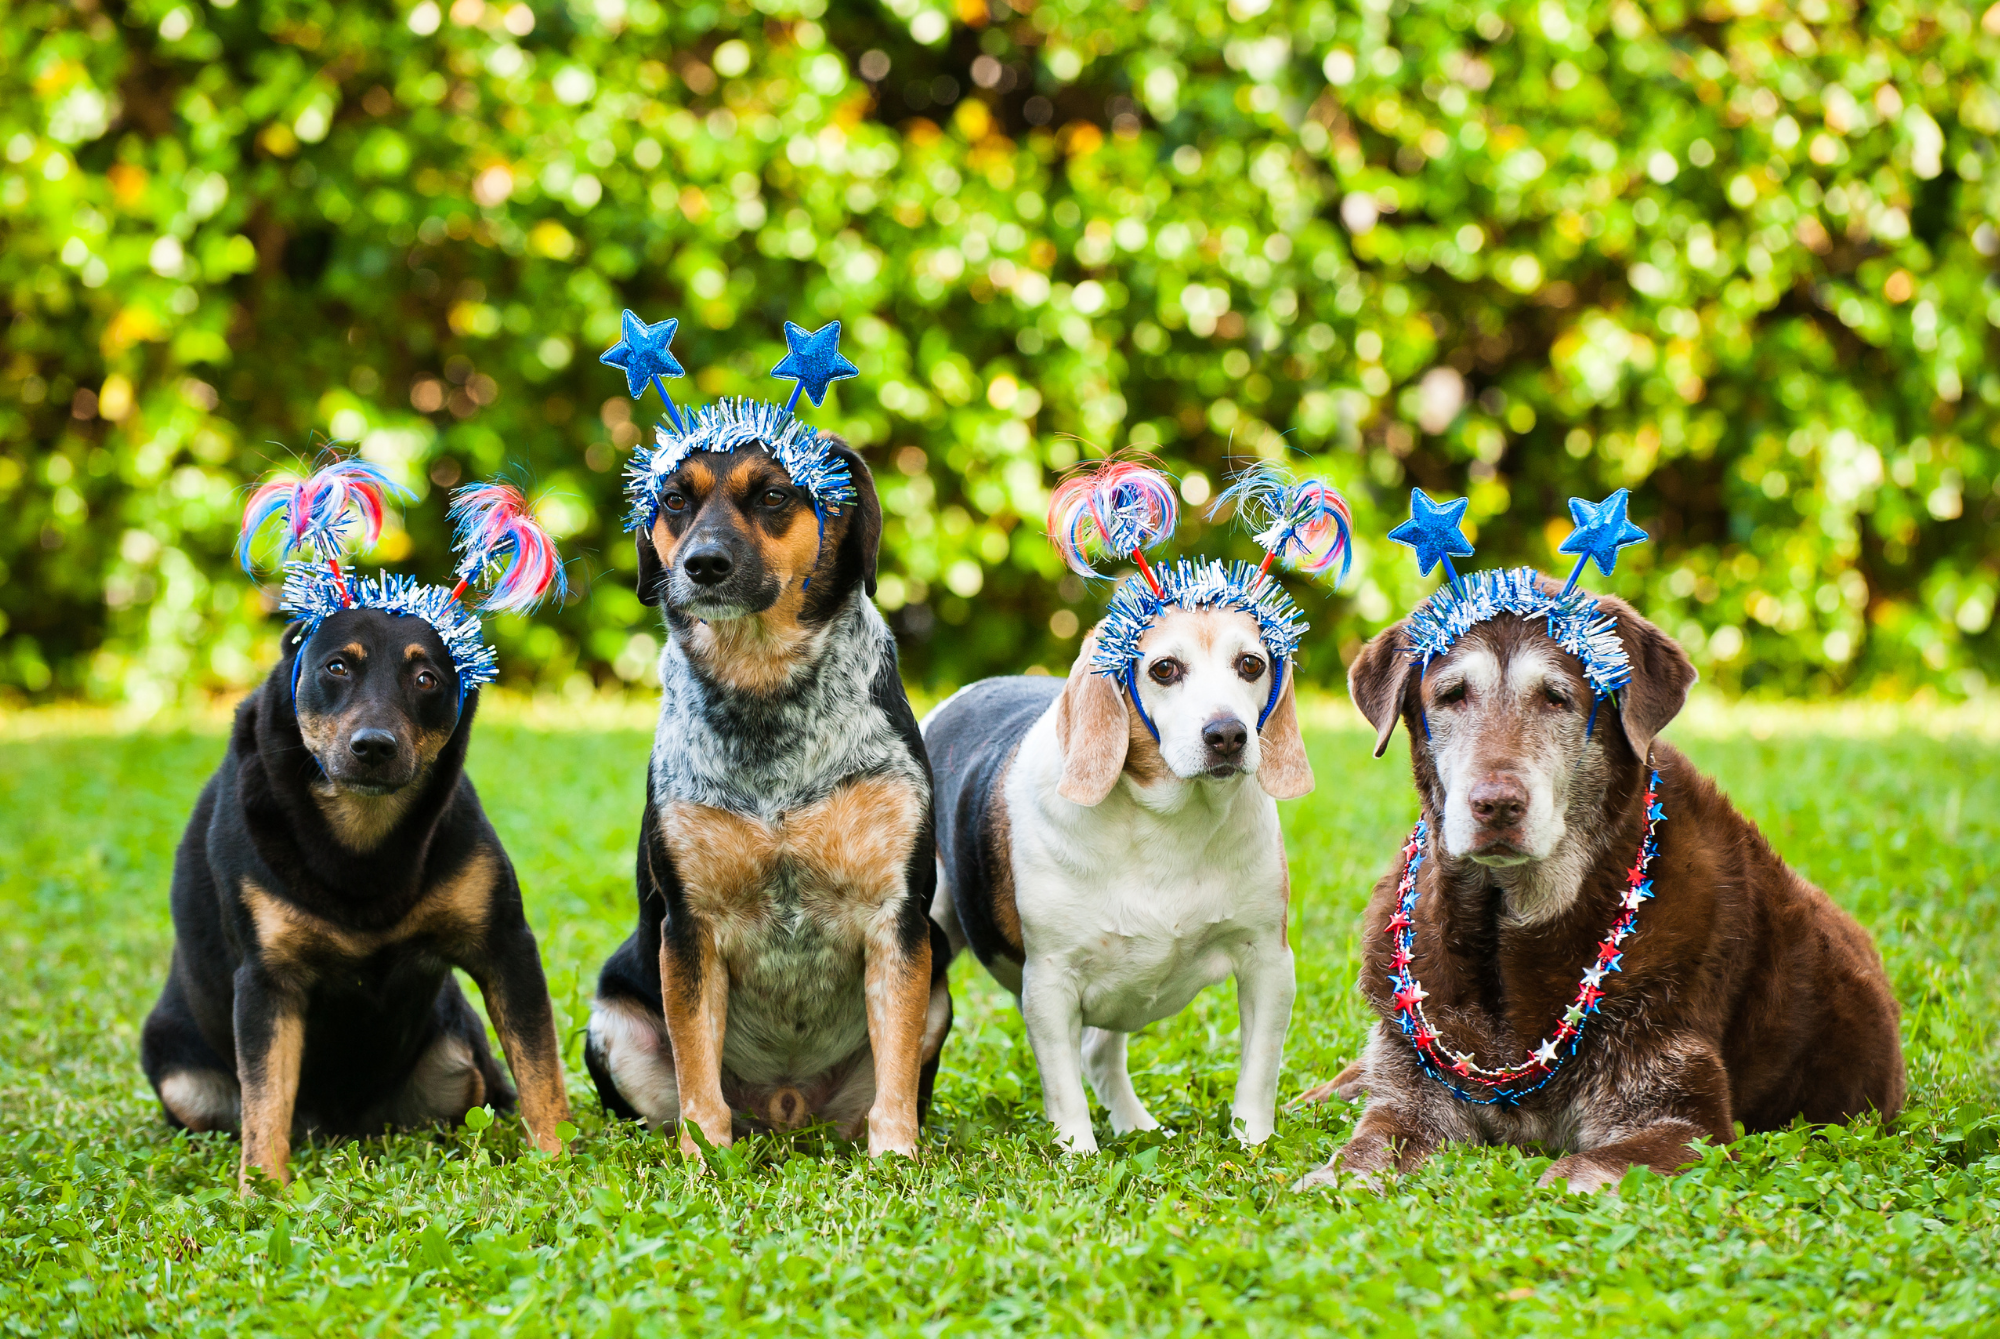 CE July 4th Firework Anxiety In Dogs Lessons learned